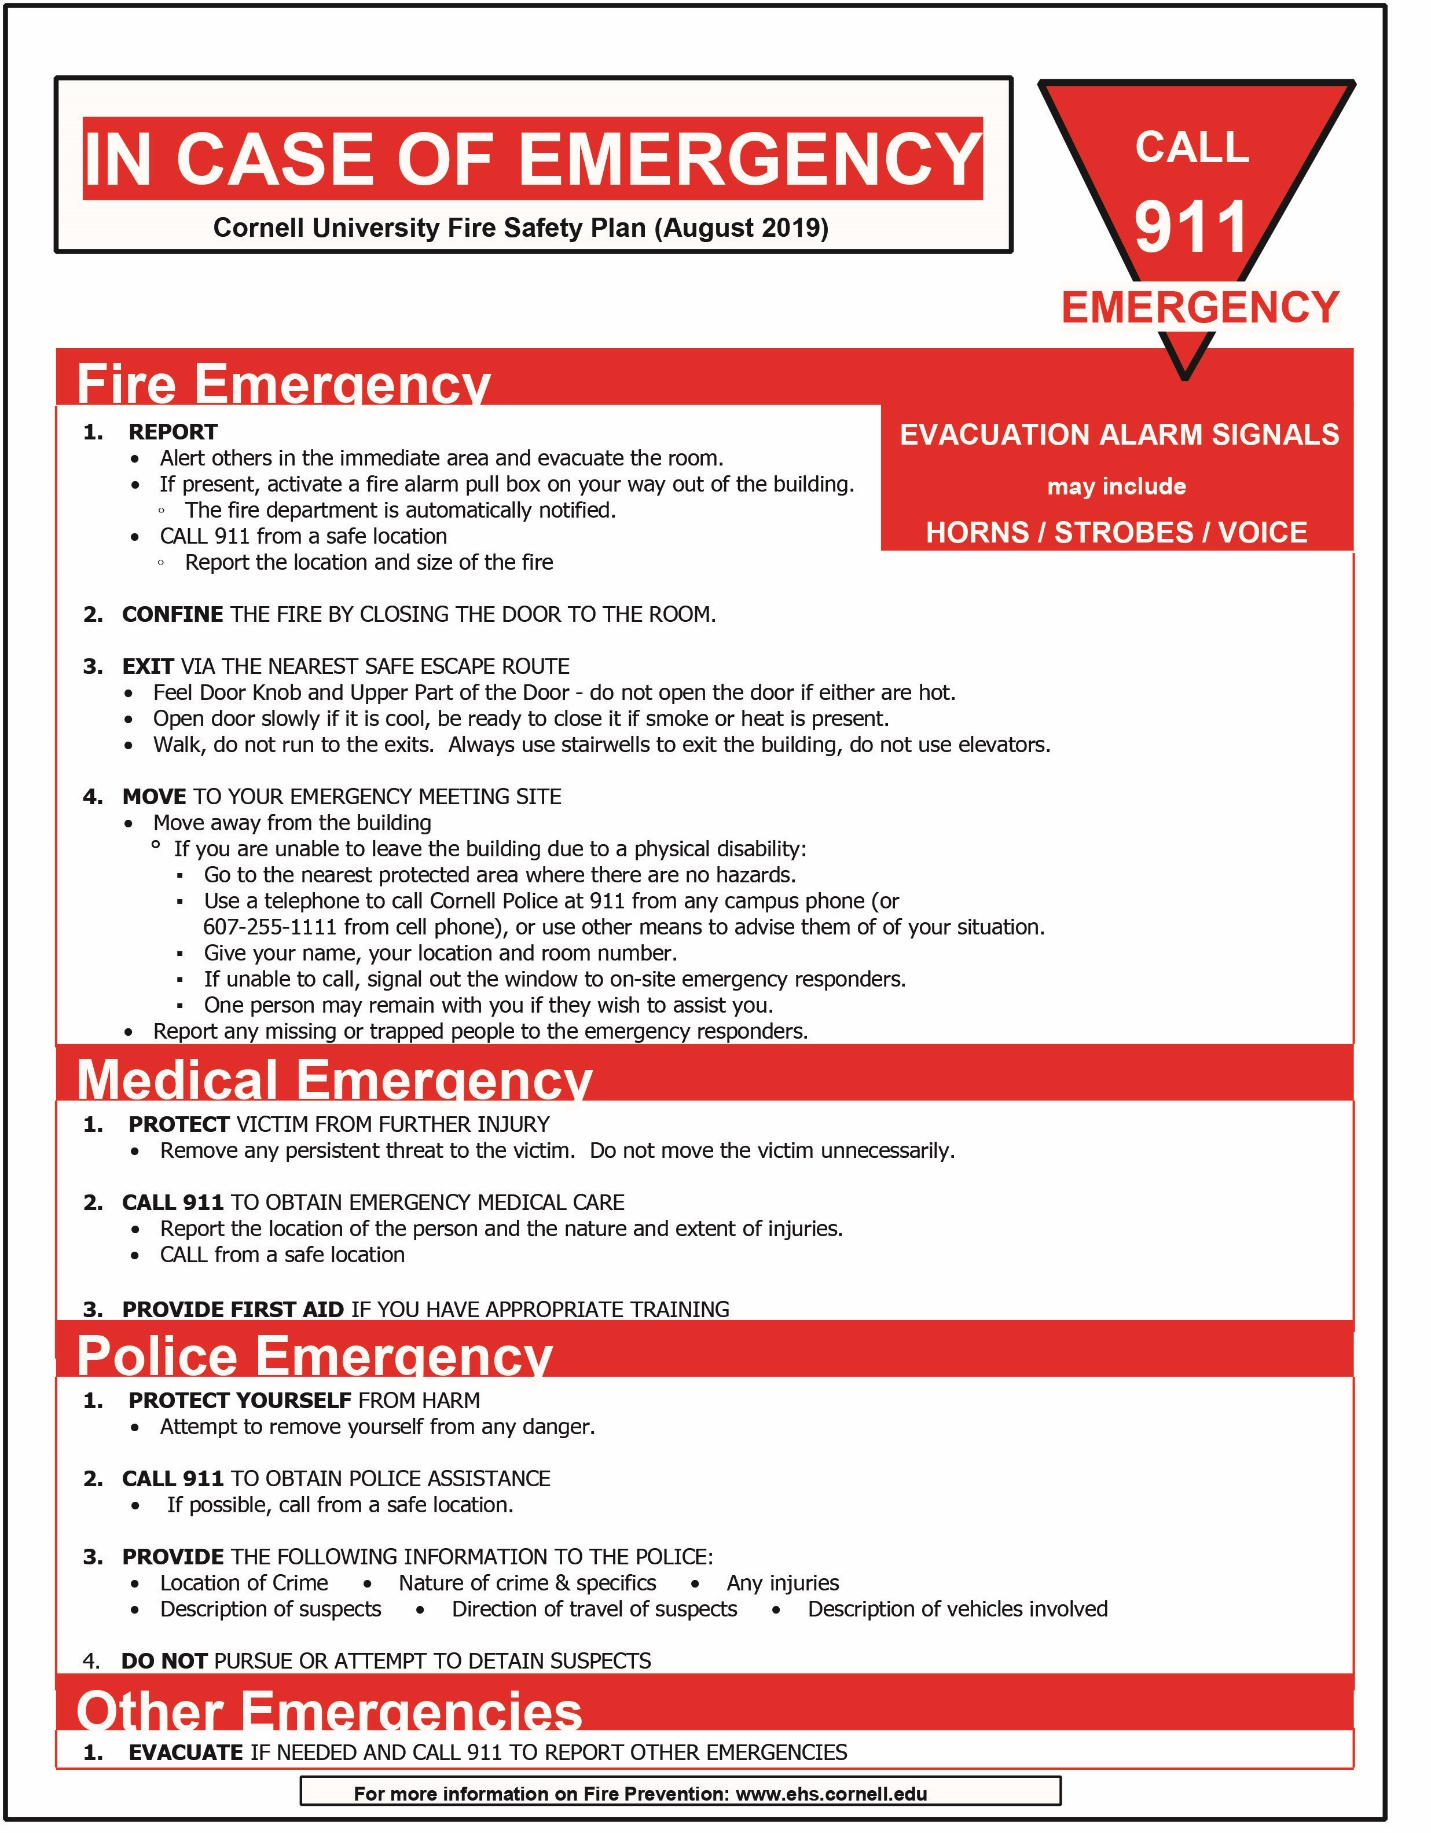 Fire Safety Plan (August 2019) Poster